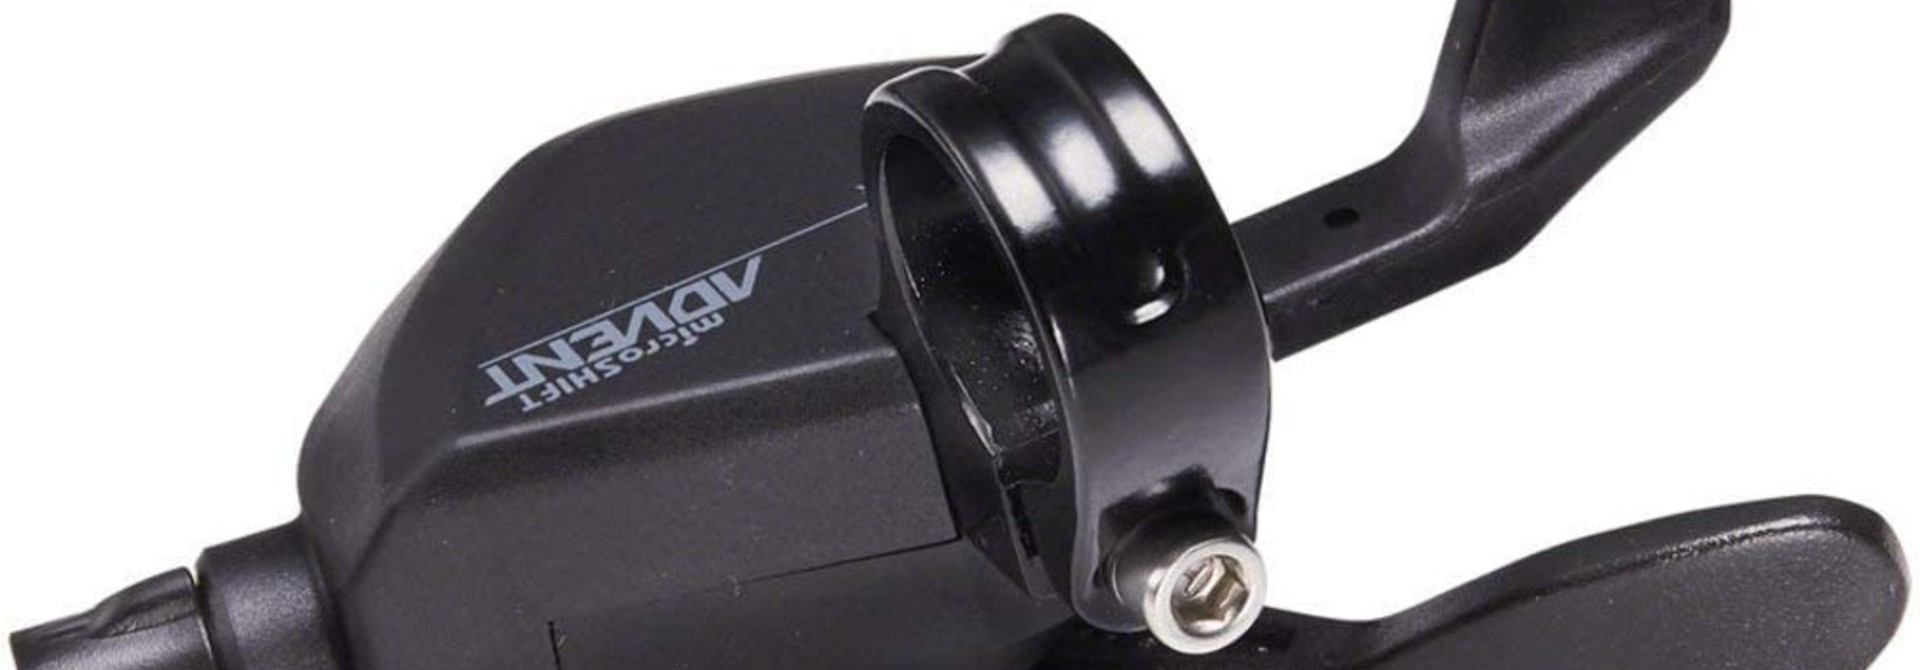 microSHIFT ADVENT Right Trigger Shifter - 1x9 Speed, With Bearing, ADVENT Compatible Only